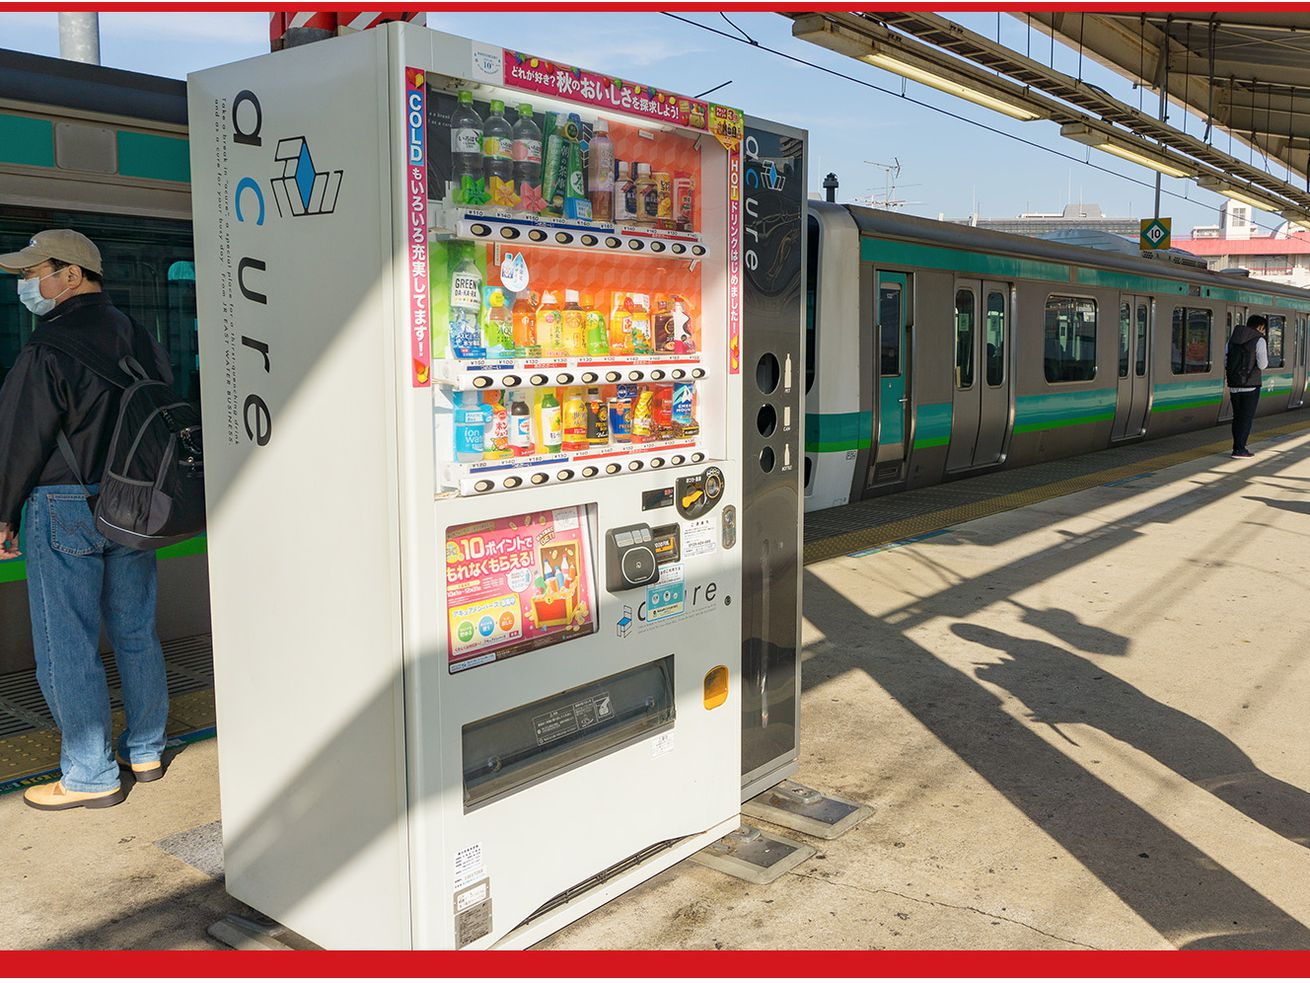 Vending machines containing drinks sit on an above ground train platform in Japan.